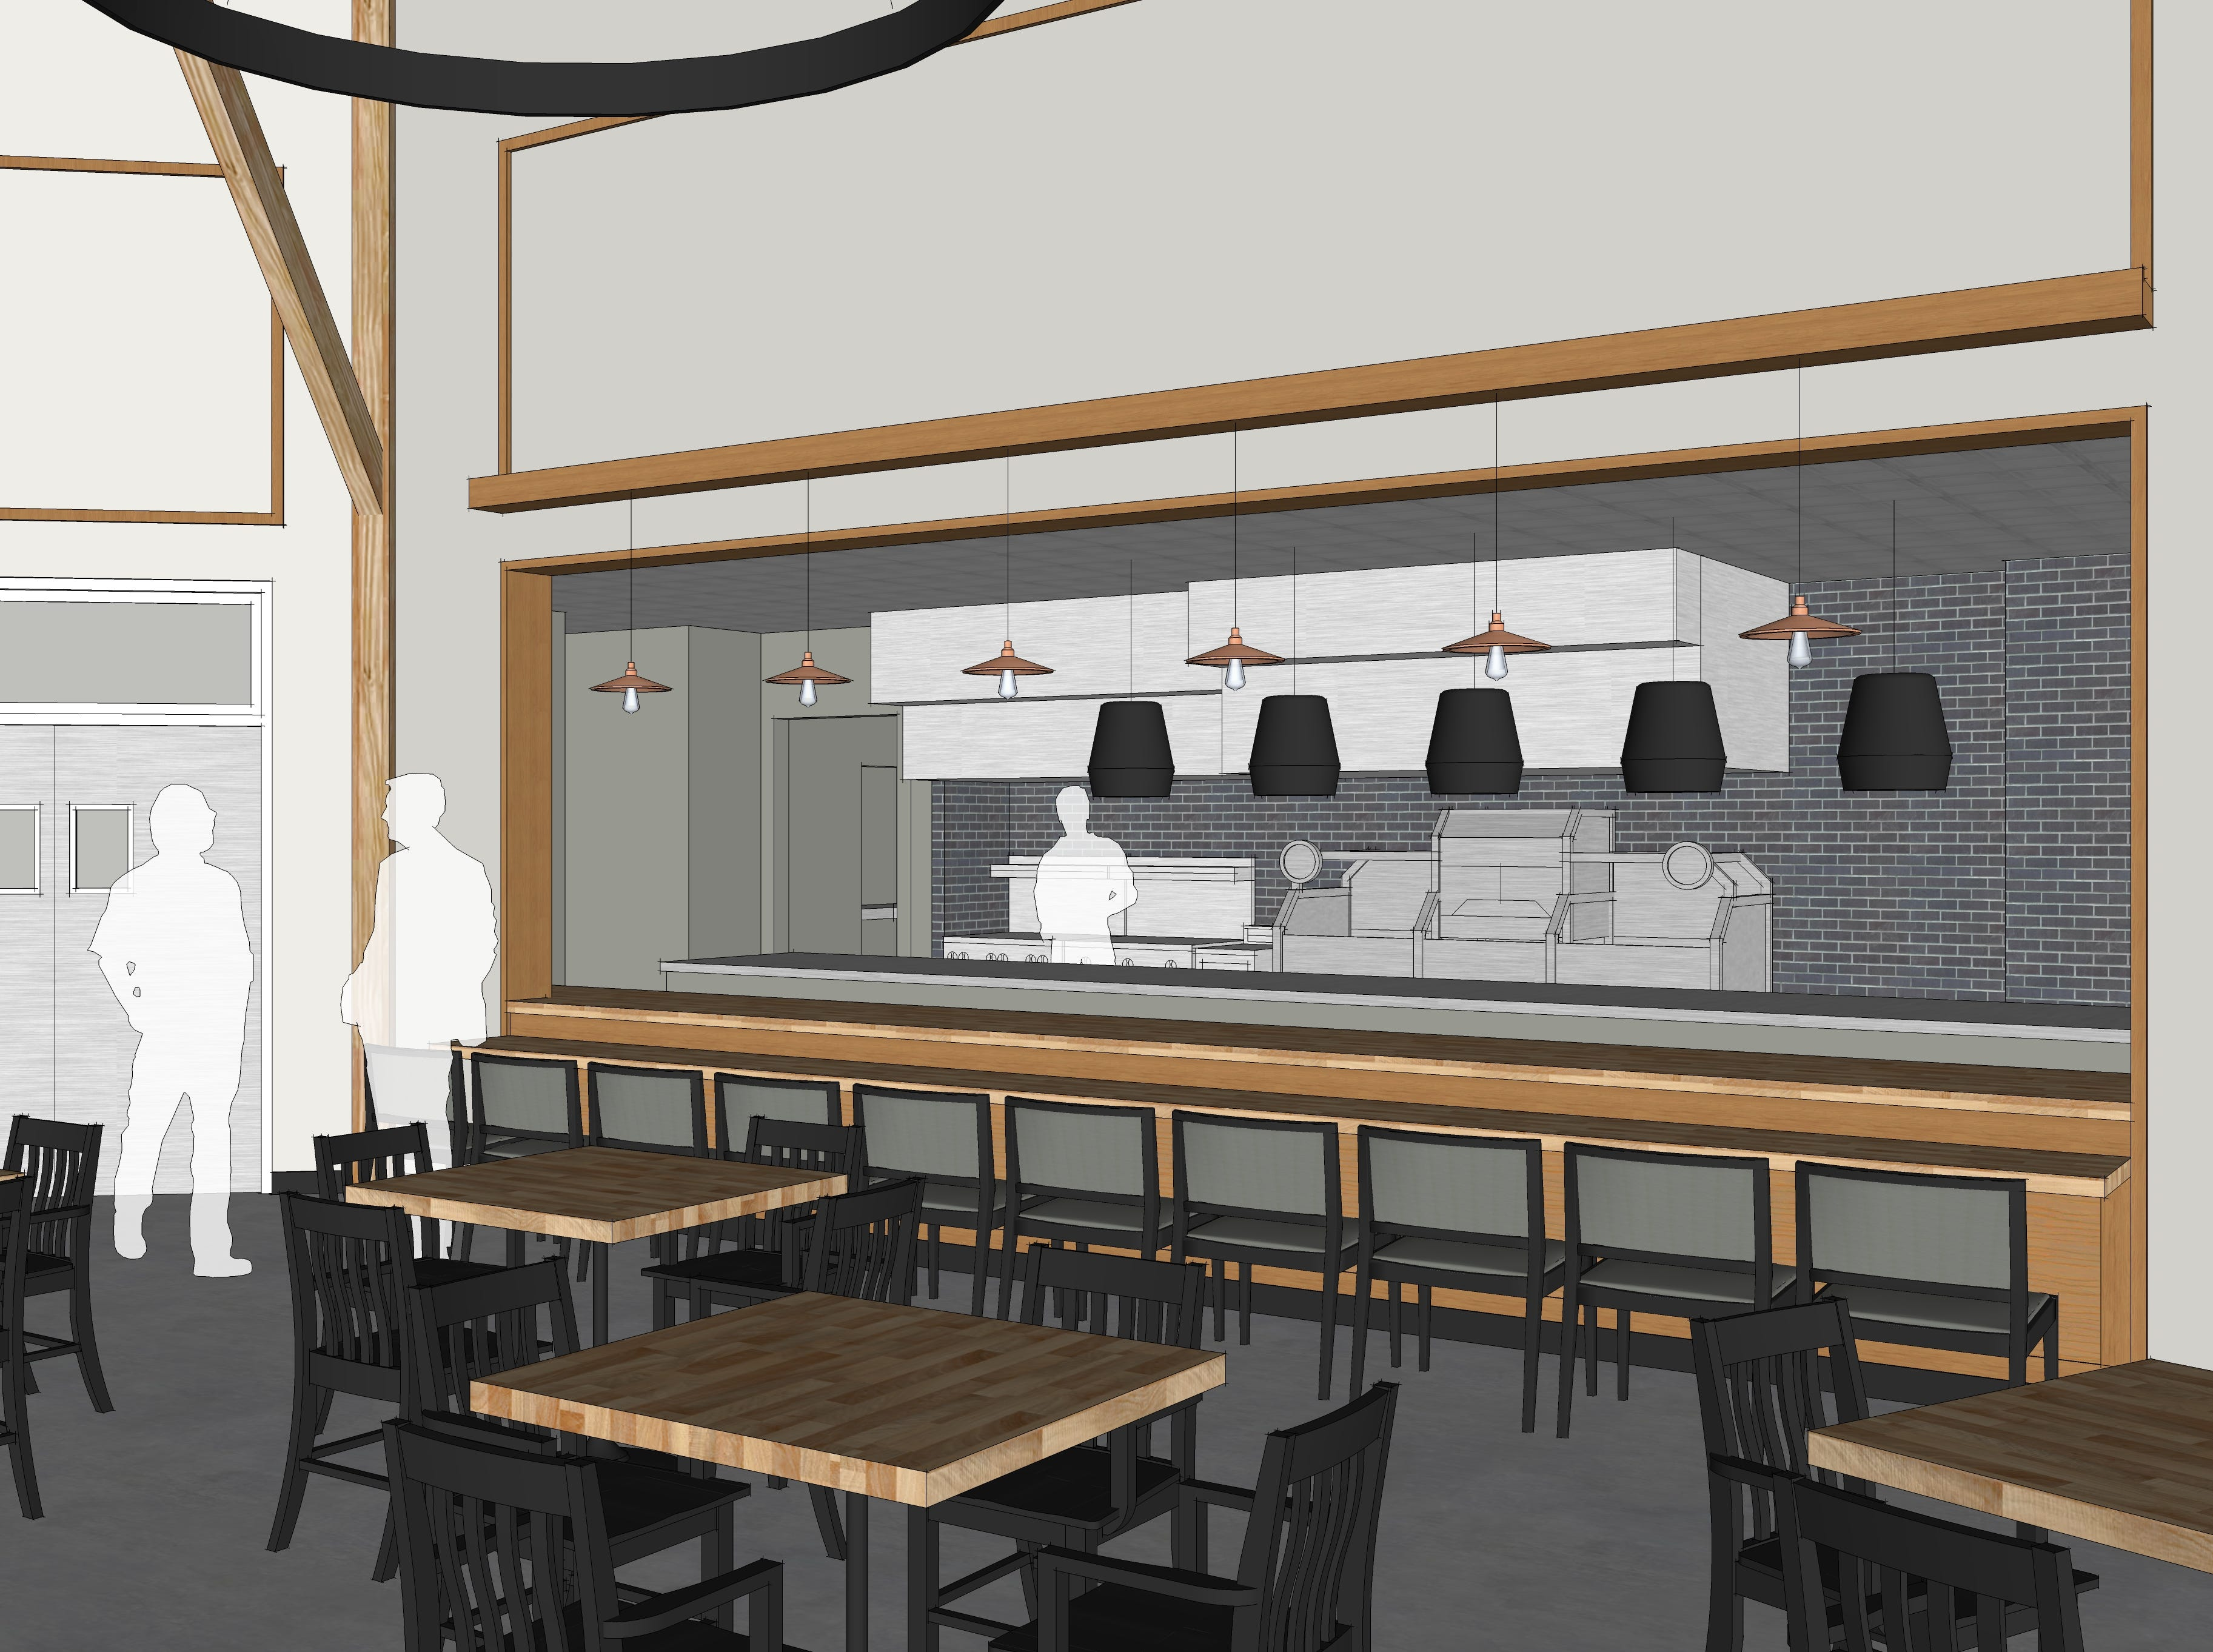 A view of the planned life-fire concept in this architectural rendering of Look's Market's plans for the former C.J. Callaway's in south Sioux Falls.